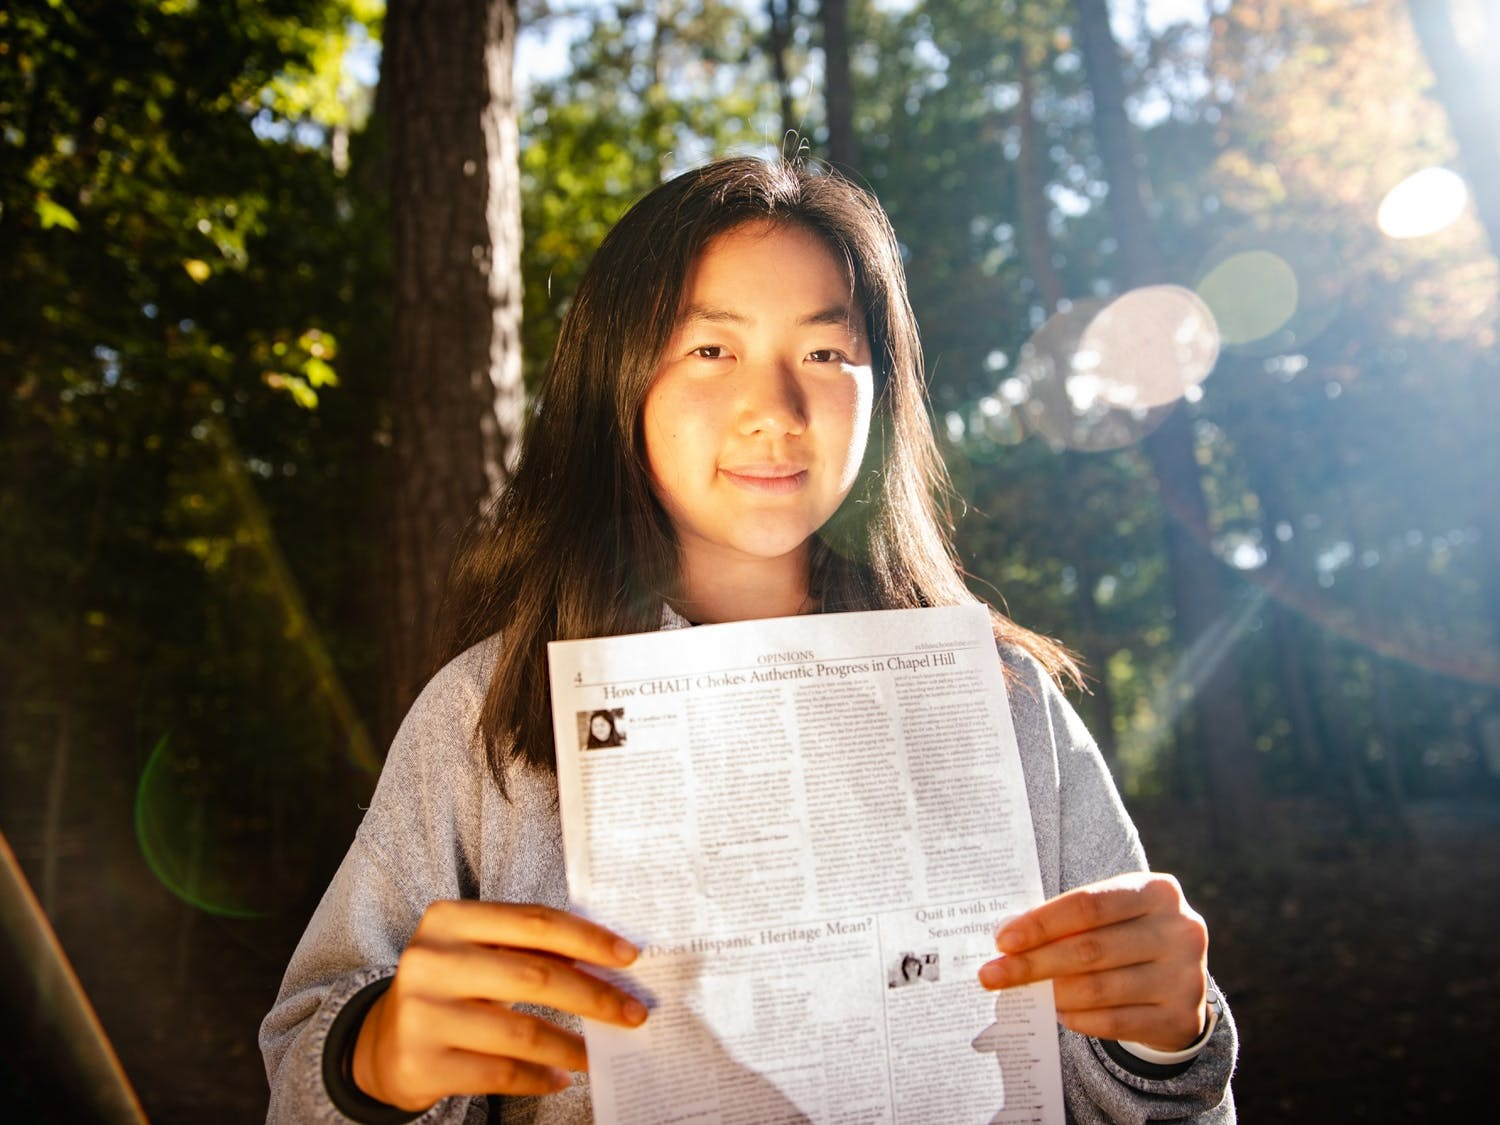 """Caroline Chen, a senior at East Chapel Hill High School, poses for a portrait with her article """"How CHALT chokes authentic progress in Chapel Hill"""" on Monday, Oct. 25, 2021. Chen's critique of CHALT, a.k.a. the Chapel Hill Alliance for a Livable Town, was originally published in the East Chapel Hill Observer and has since received a direct response from the organization."""